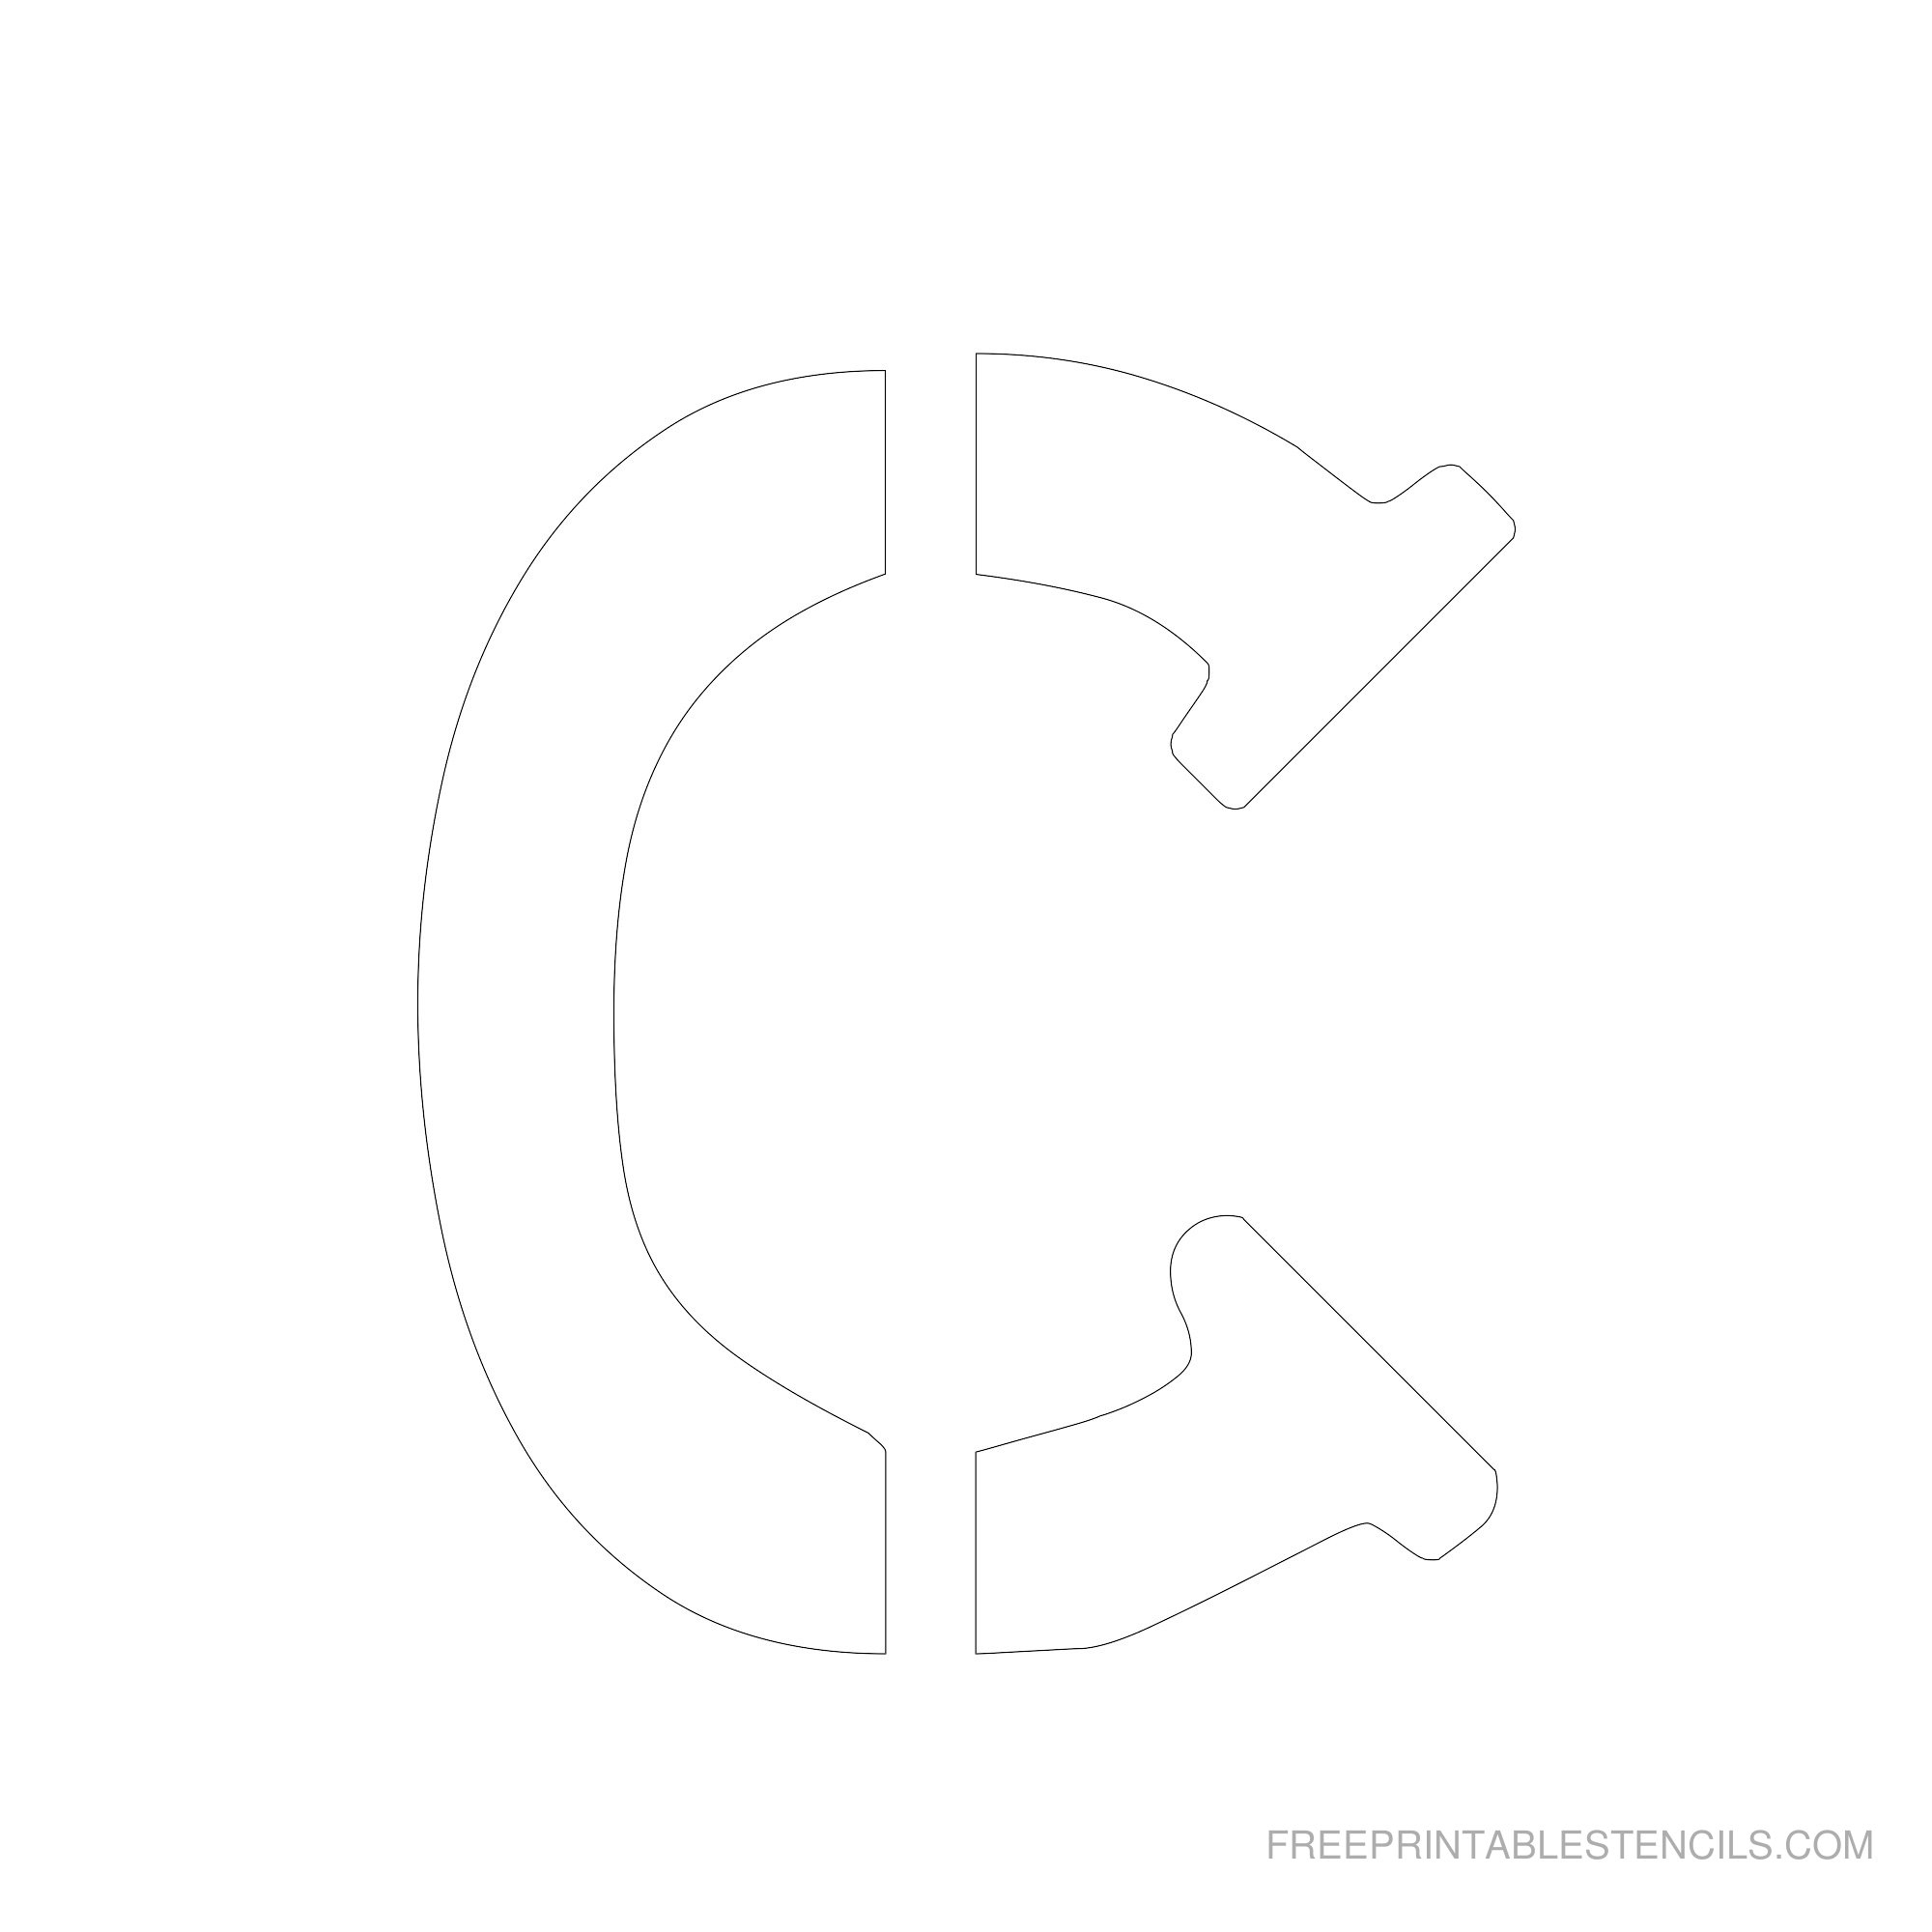 Printable 6 Inch Letter Stencils A-Z   Free Printable Stencils - Free Printable Cookie Stencils